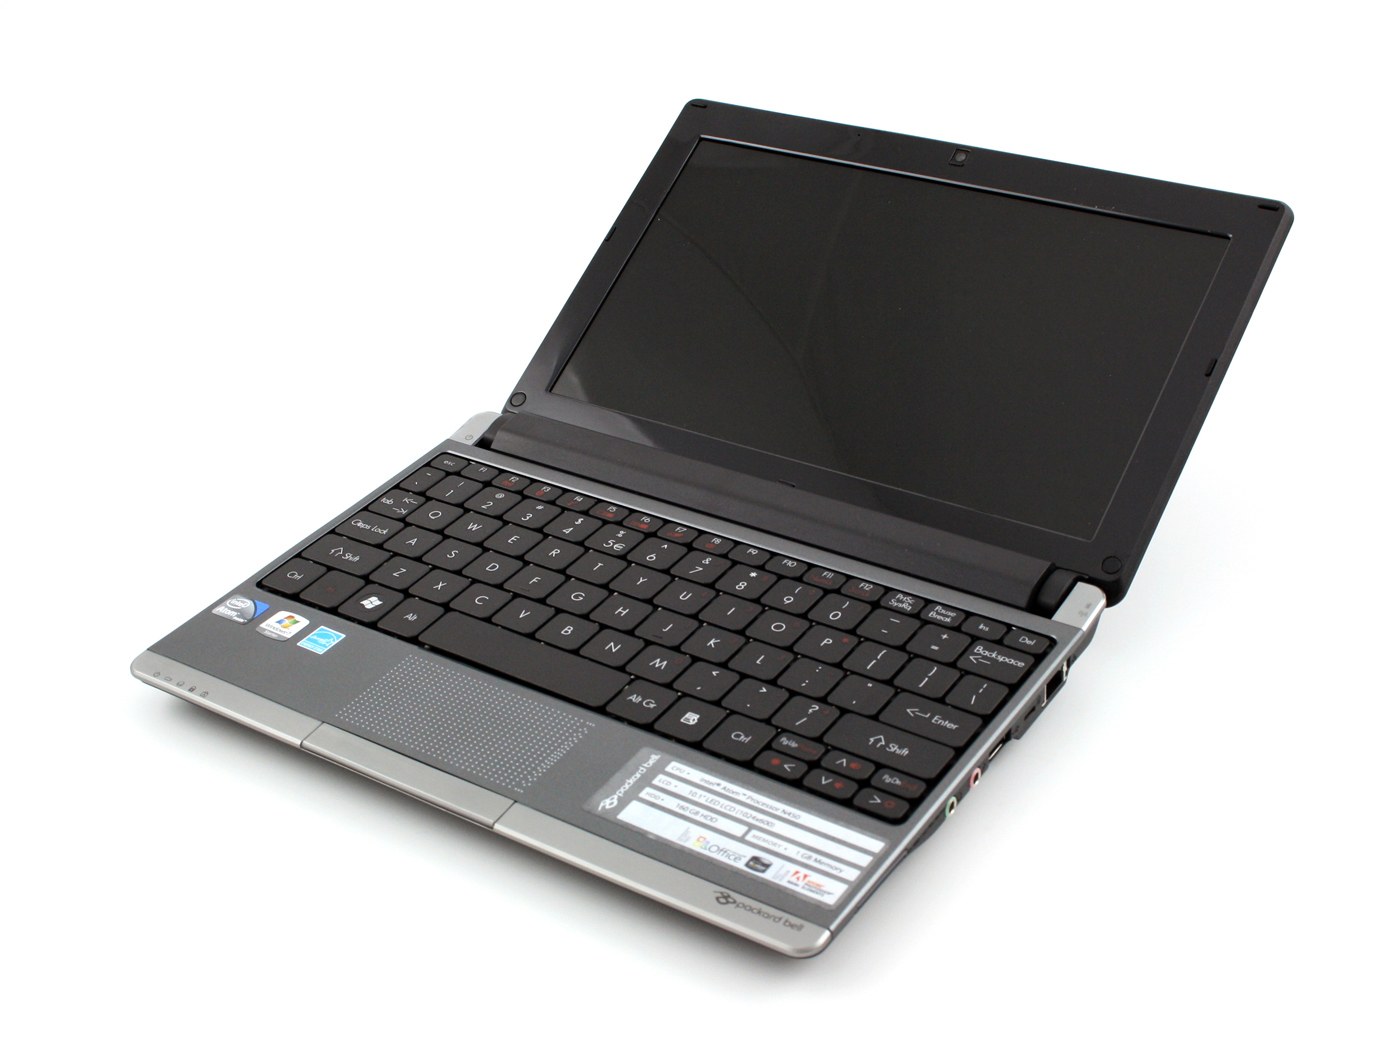 Packard bell dot s2 драйвера